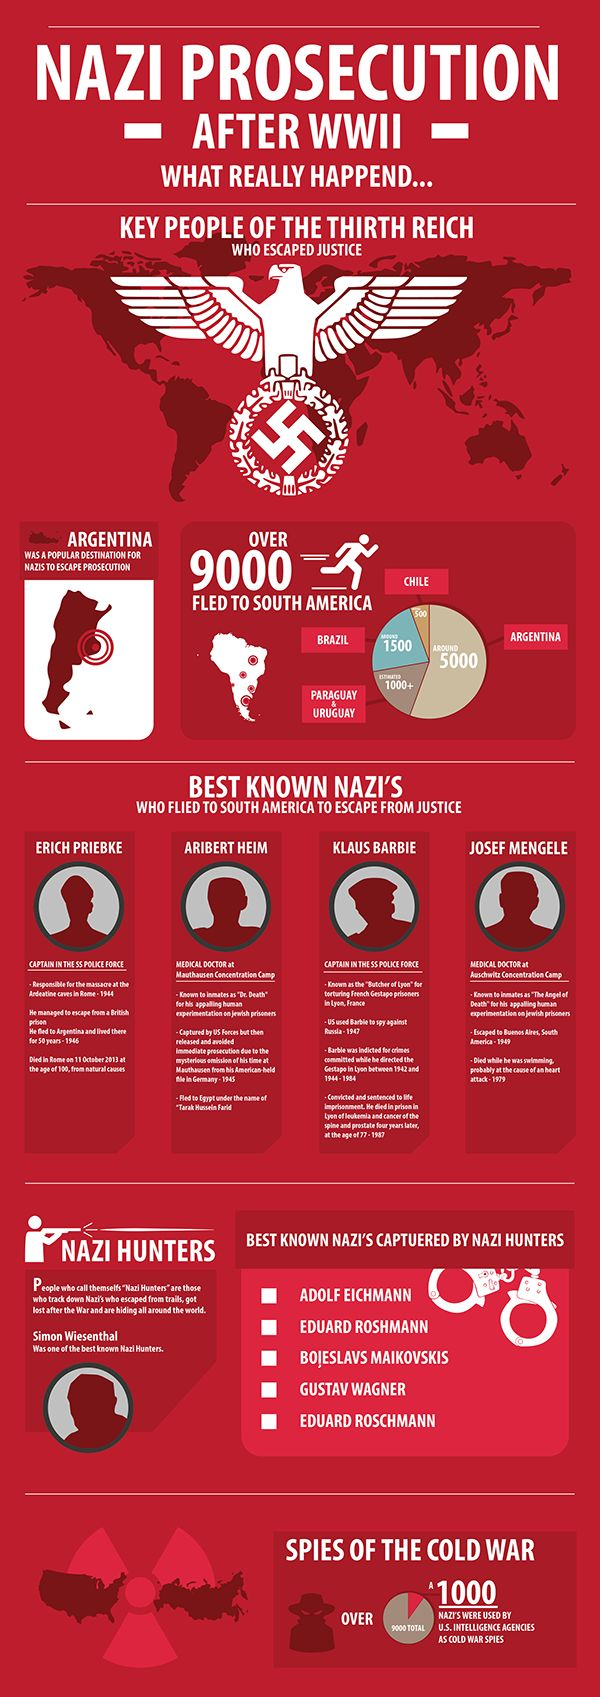 This Is Angraphic About The Nazi Prosecution After World War Ii Made  By: Martijn